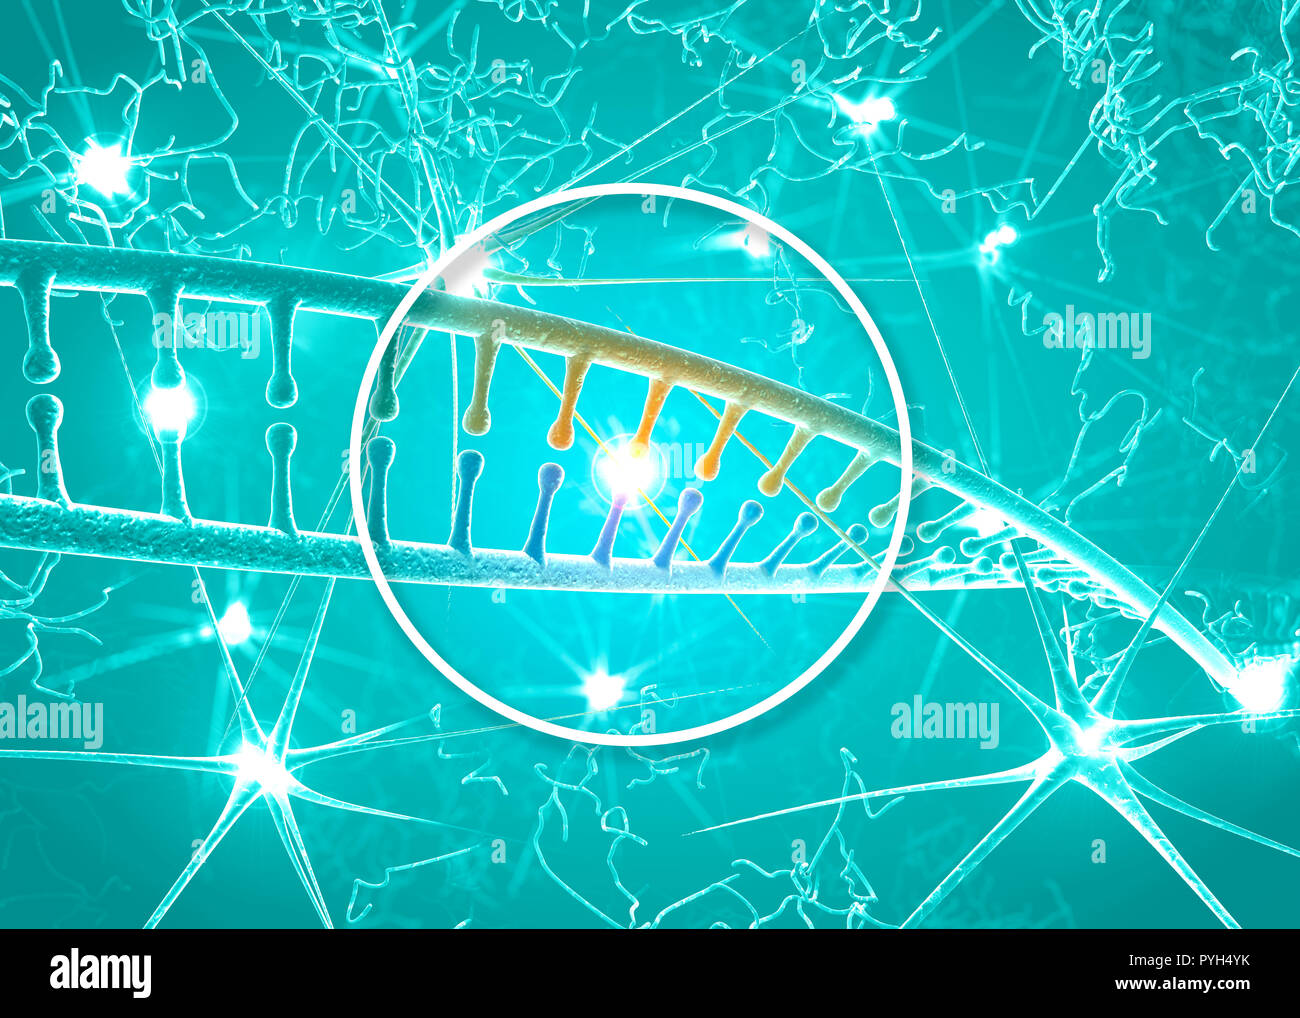 DNA and neurons, DNA restructuring, rewriting and continuous regeneration, increased activity of nerve cells, chromosomes and genetic material - Stock Image